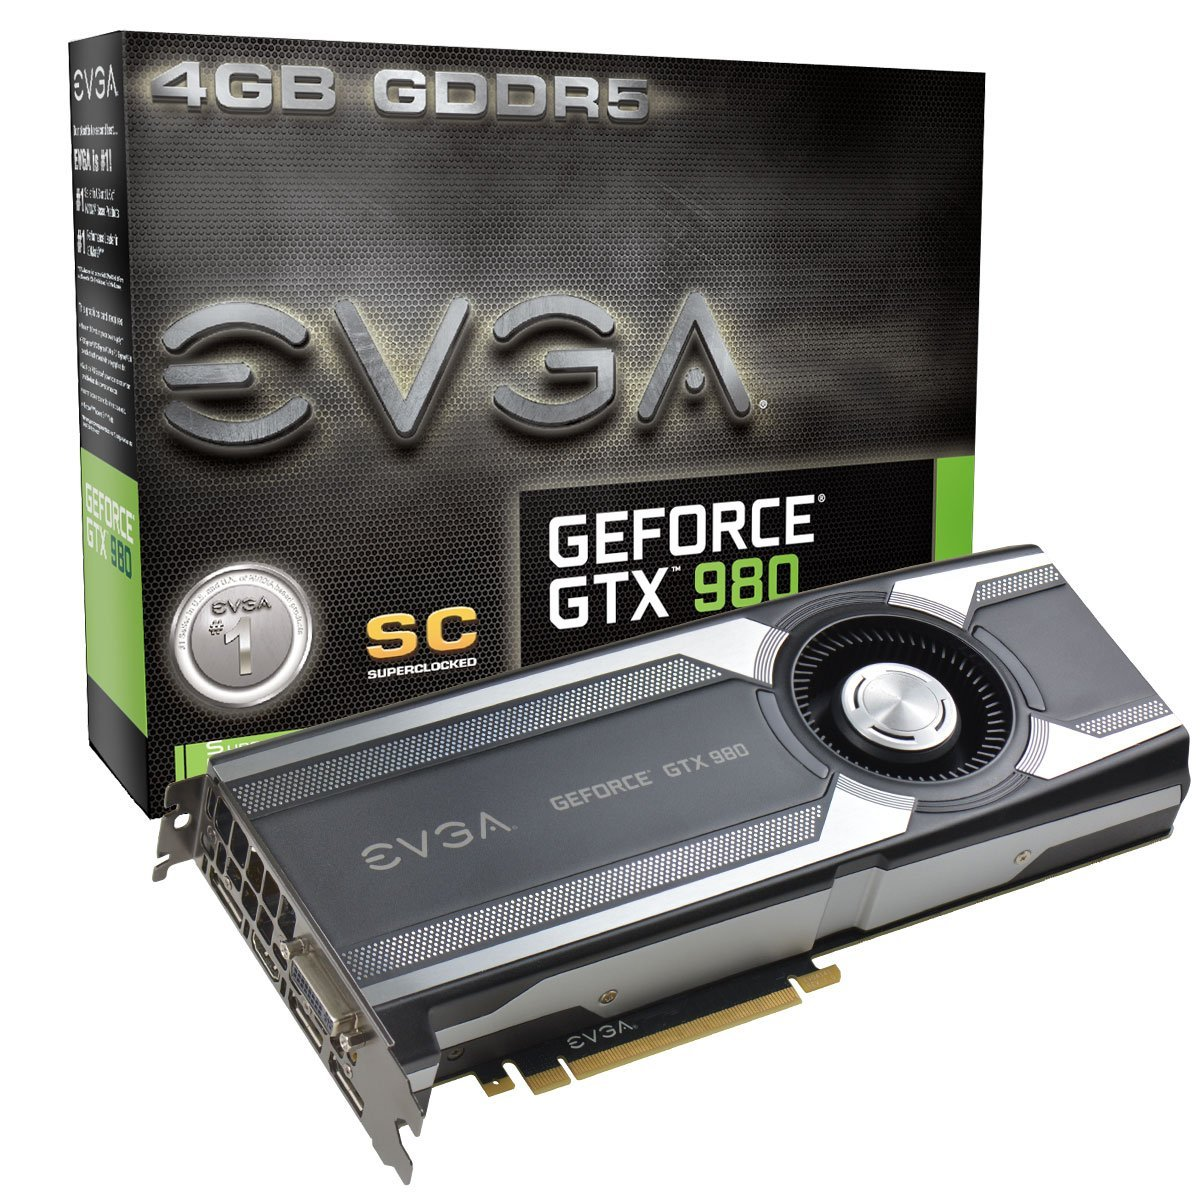 Nvidia GeForce GTX 980 Hashrate